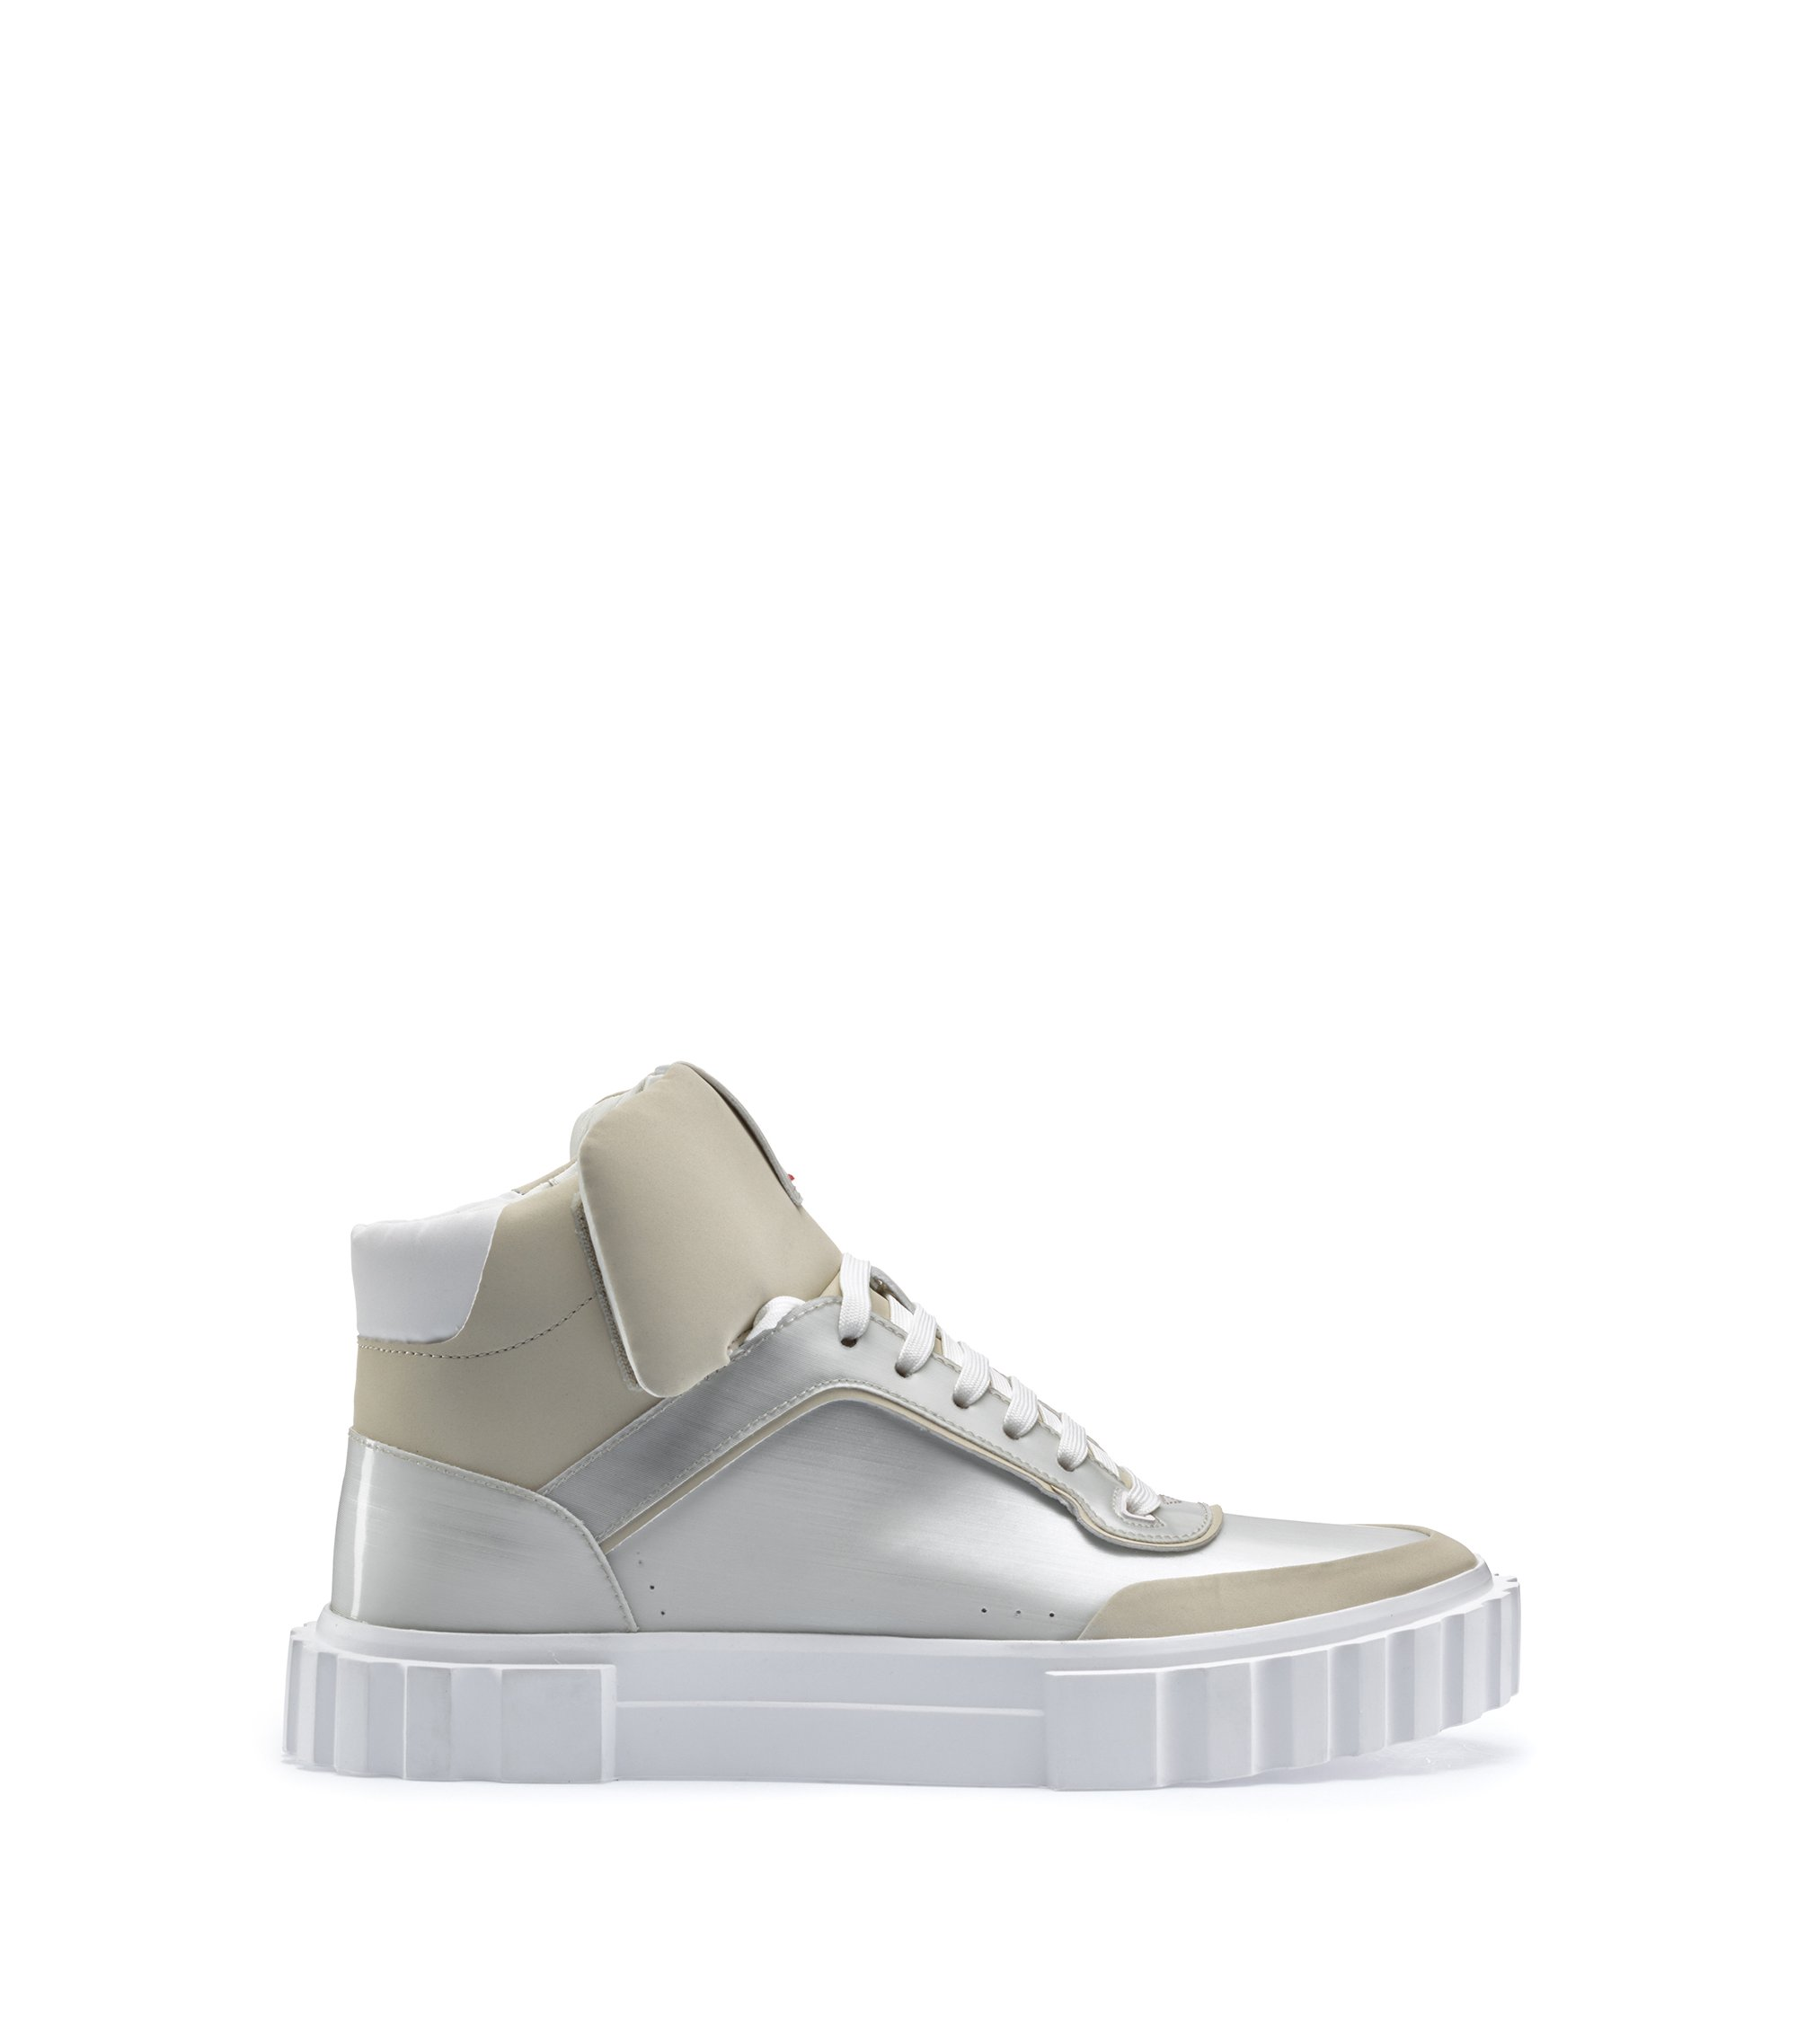 Hightop Sneakers mit Metallic-Finish und Schnürung, Hellgrau